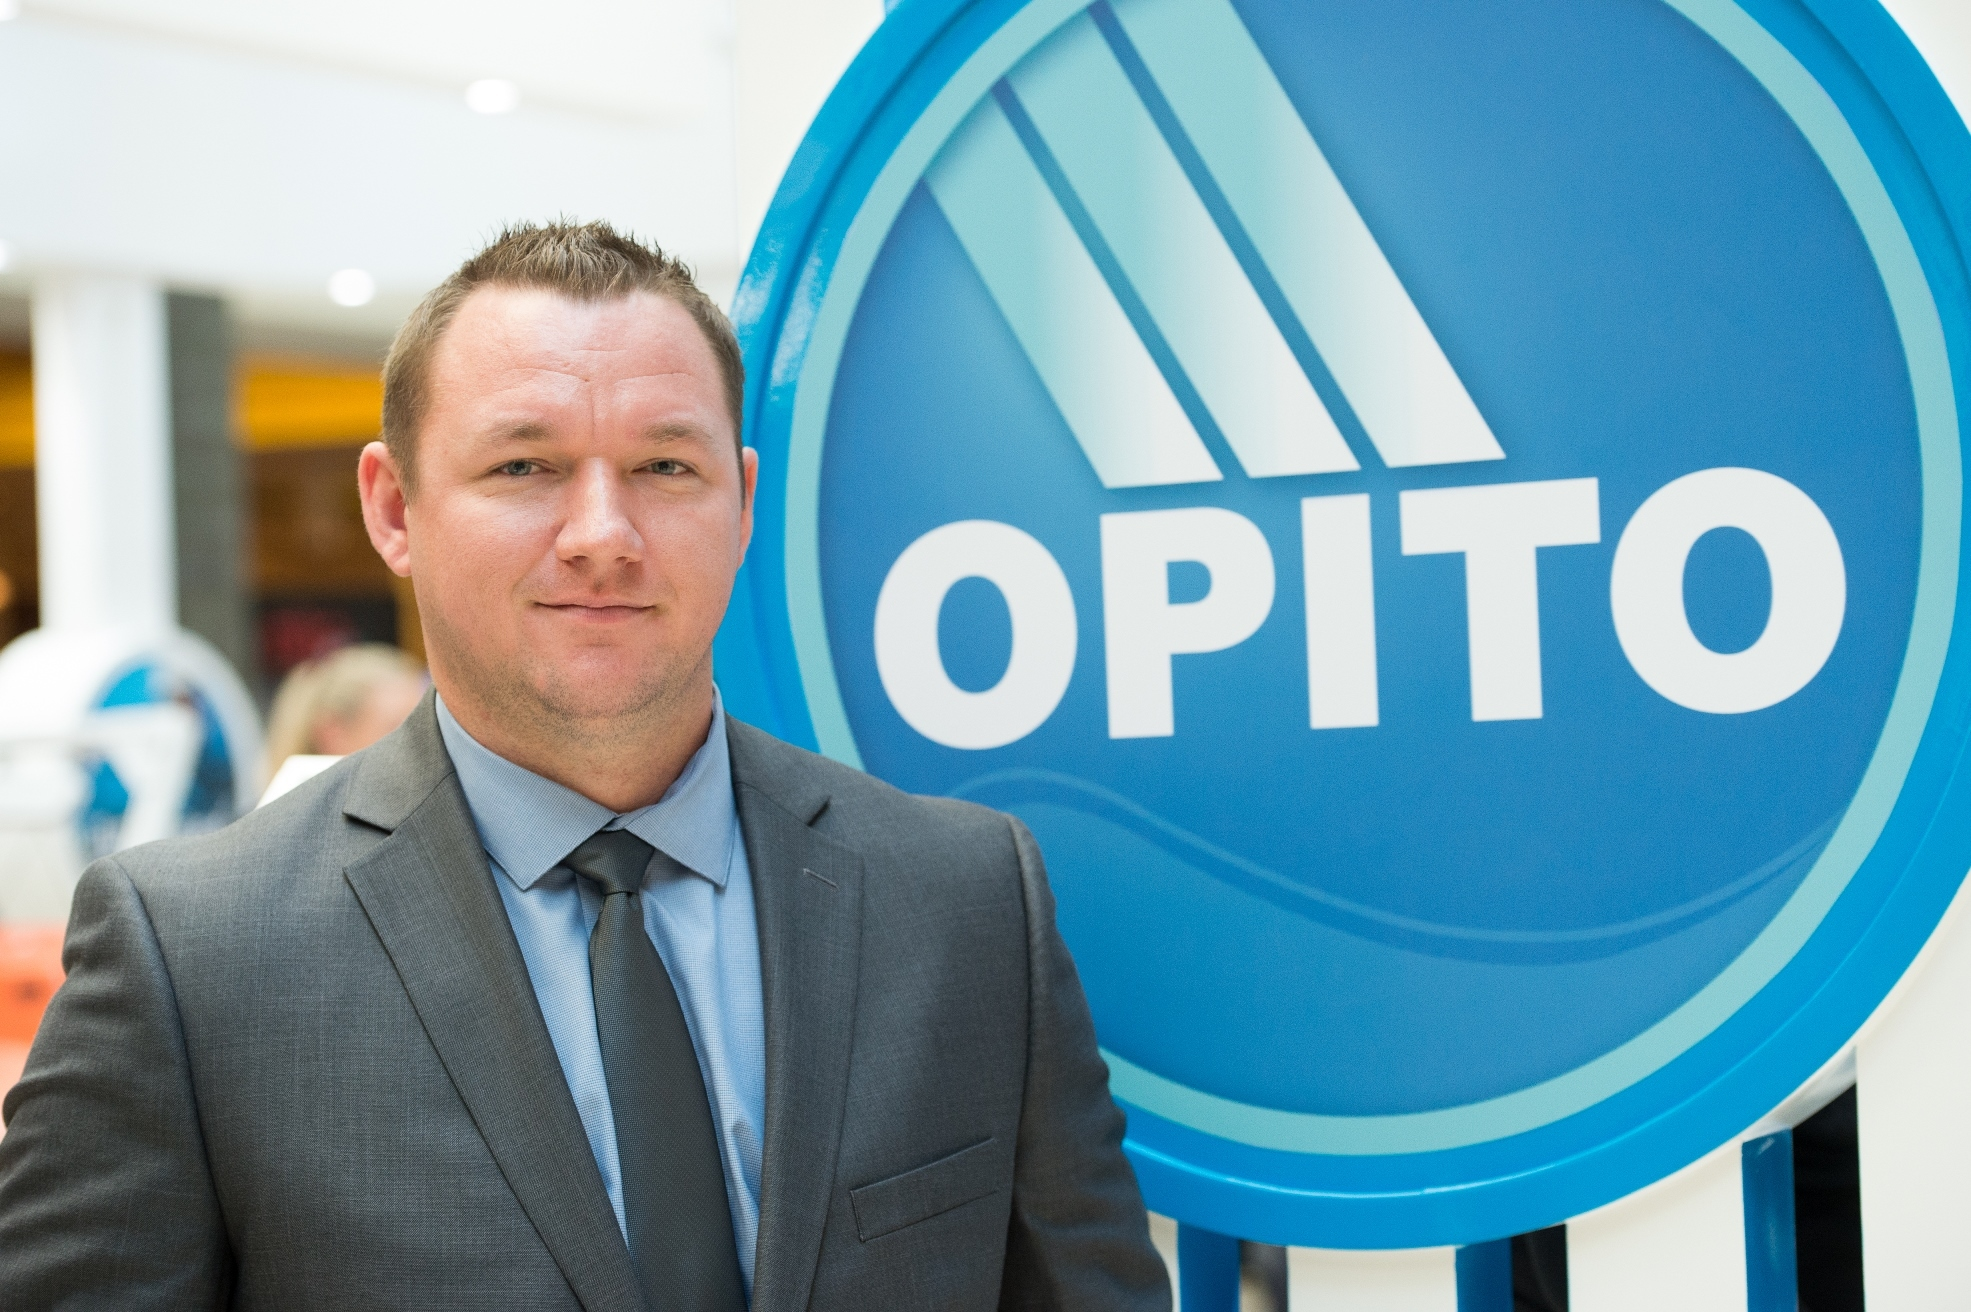 Richard Edwards has joined the Opito team